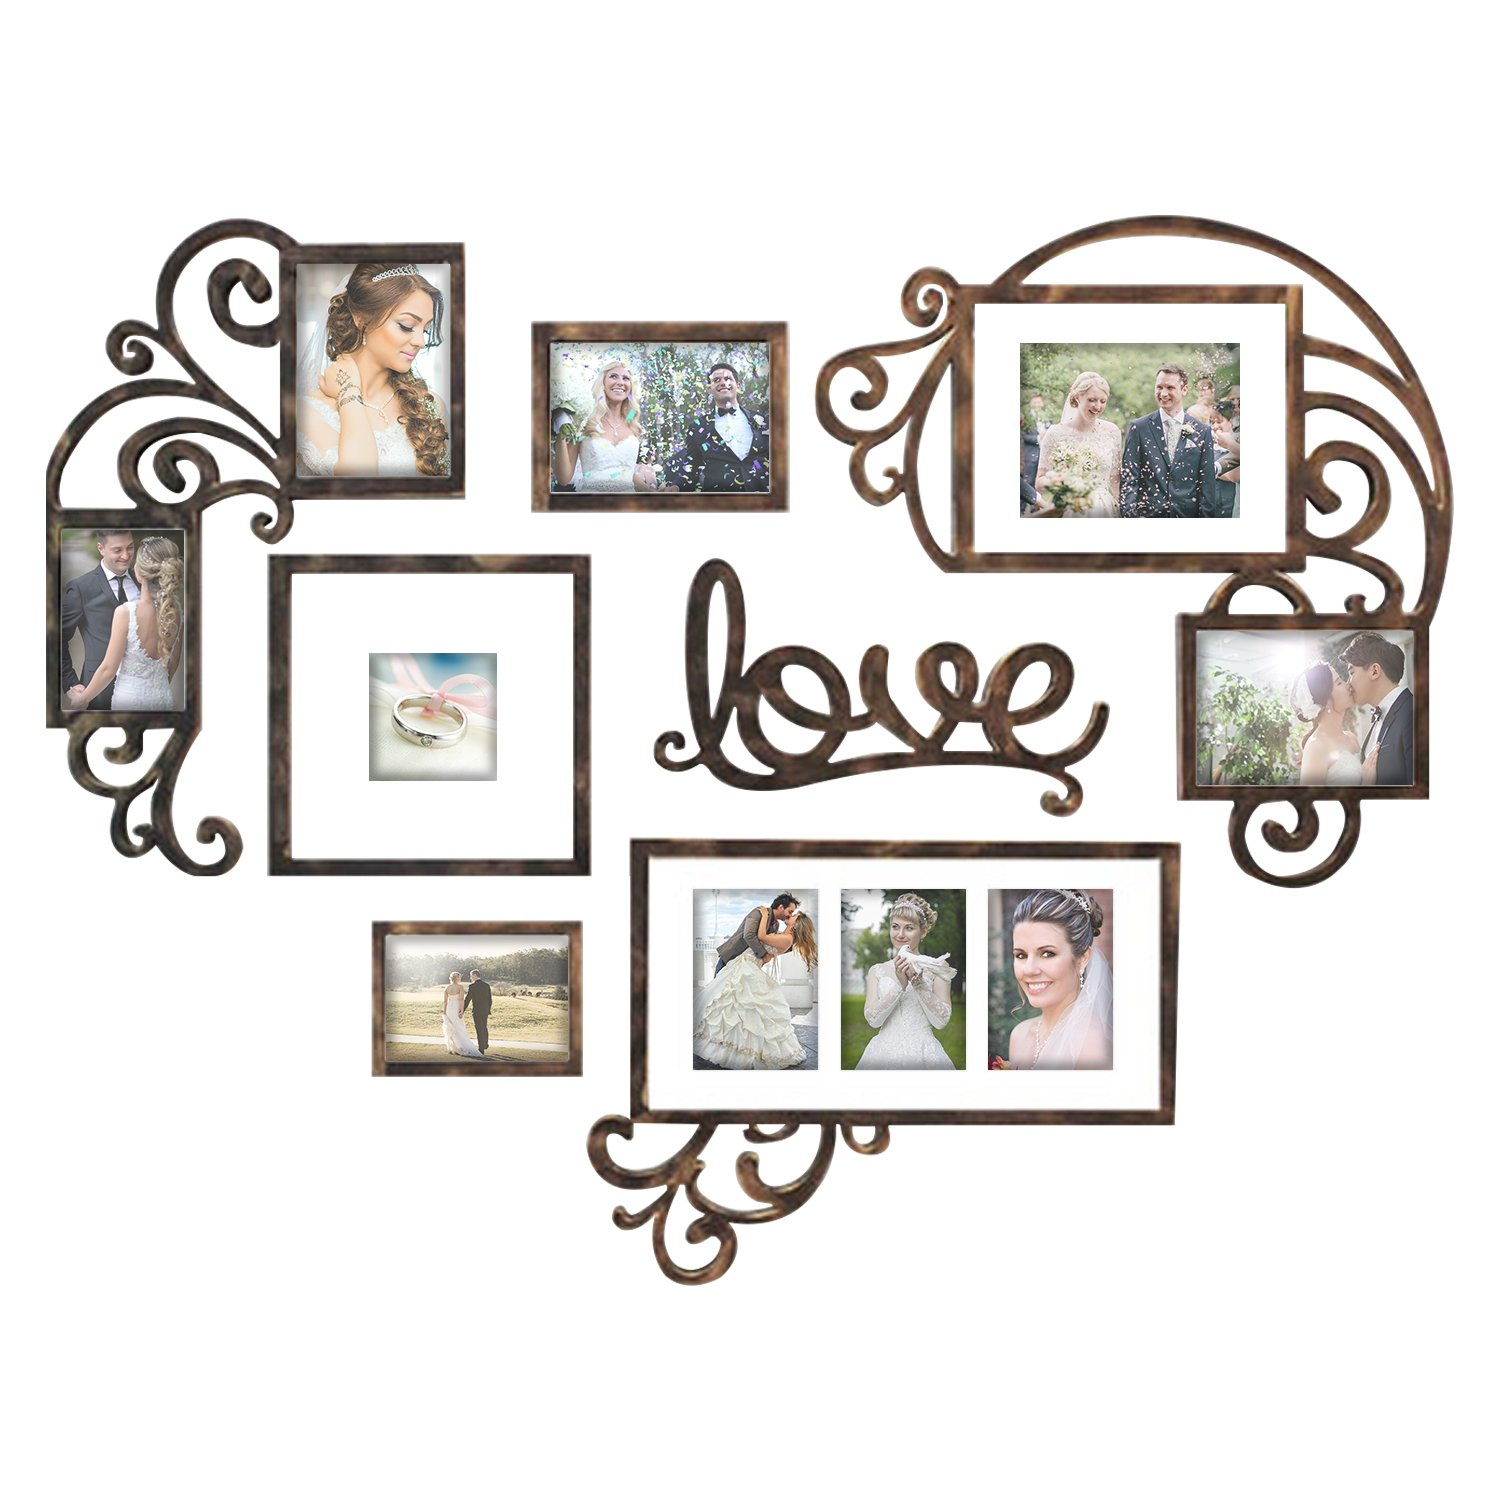 Jerry & Maggie - Photo Frame | Plaque College Frame - Valentine Wall Decoration Combination - Brown PVC Picture Frame Selfie Gallery Collage W Wall Hanging Mounting Design | Love Heart Shape by Jerry & Maggie